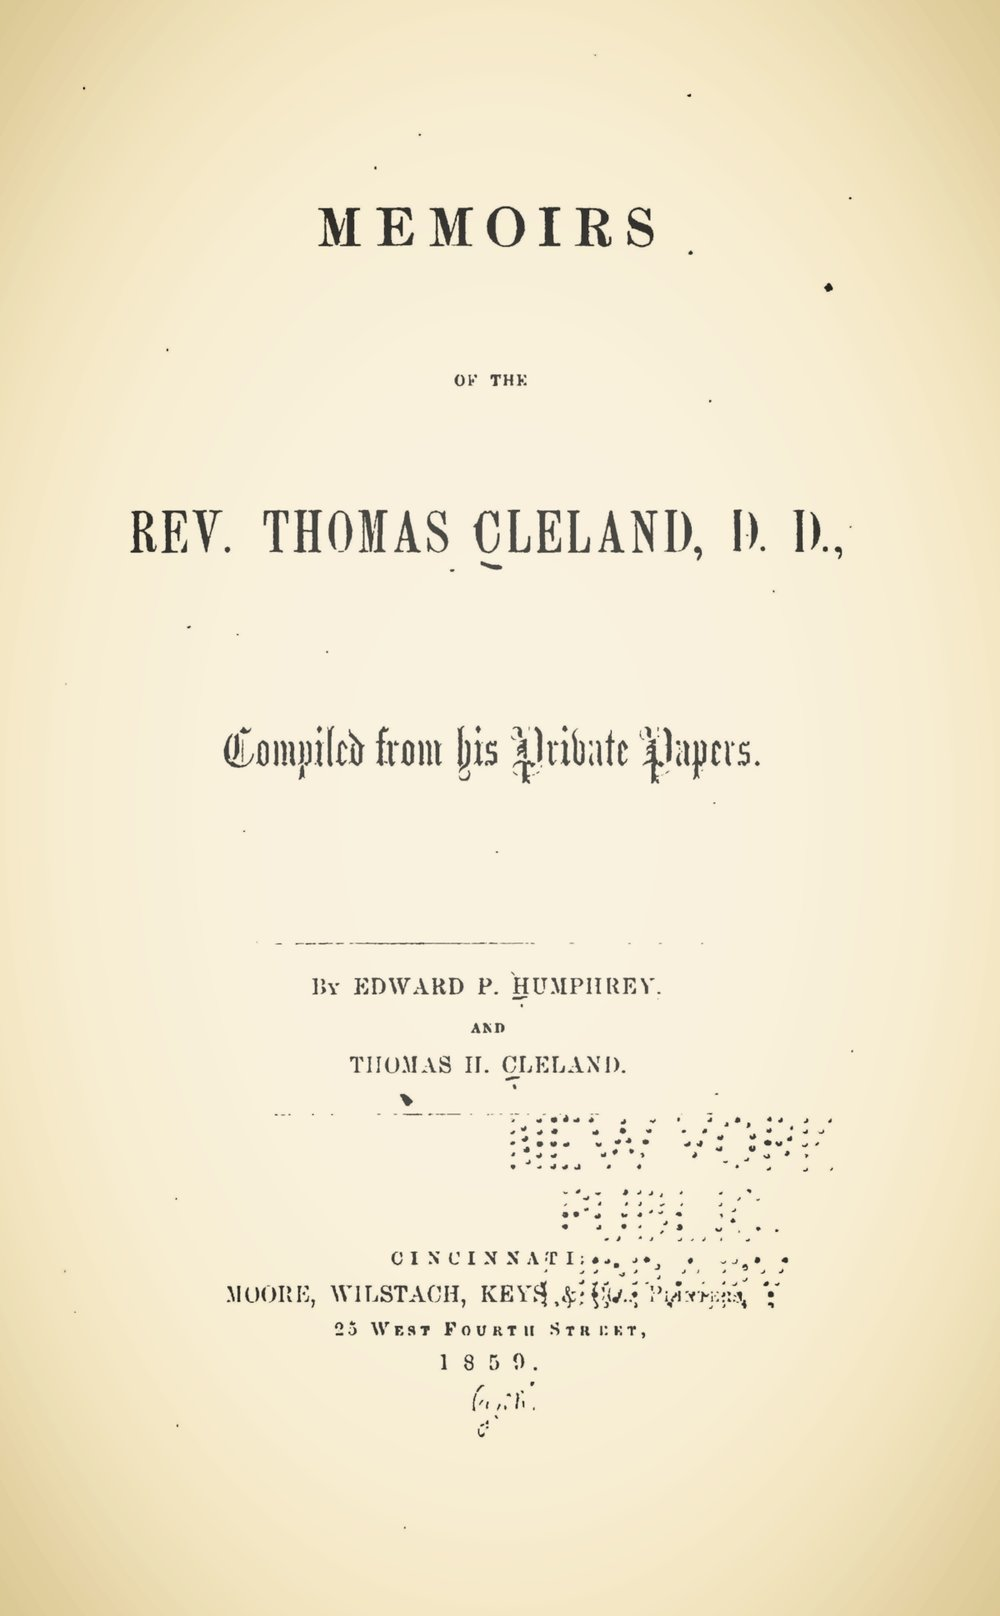 Humphrey, Edward Porter, Memoirs of the Rev. Thomas Cleland, D.D. Title Page.jpg